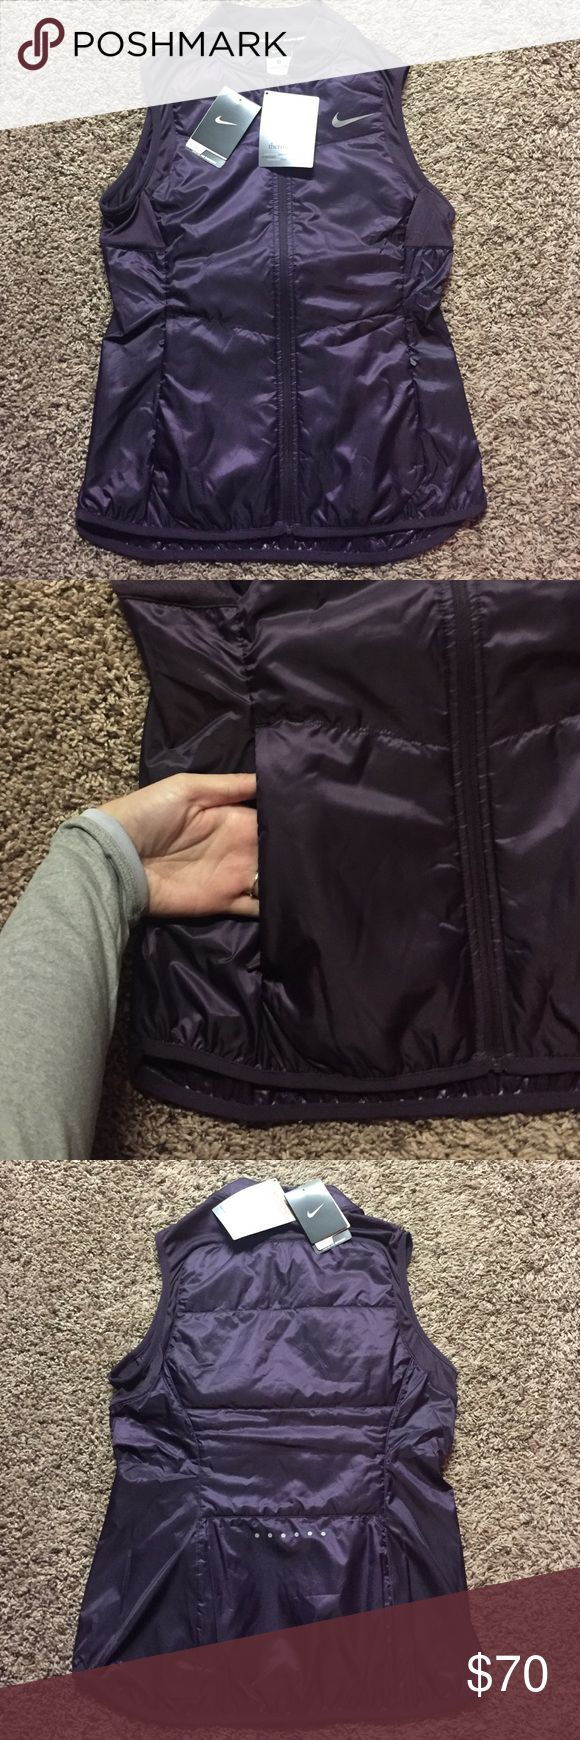 "NWT PURPLE NIKE VEST This vest is amazing. Nike really killed it with this one! Deep purple color, lightweight yet amazingly warm. ""Crafted for Movement"" & packable! Has pockets . Thermosoft technology. Send me an offer! Nike Jackets & Coats Vests"